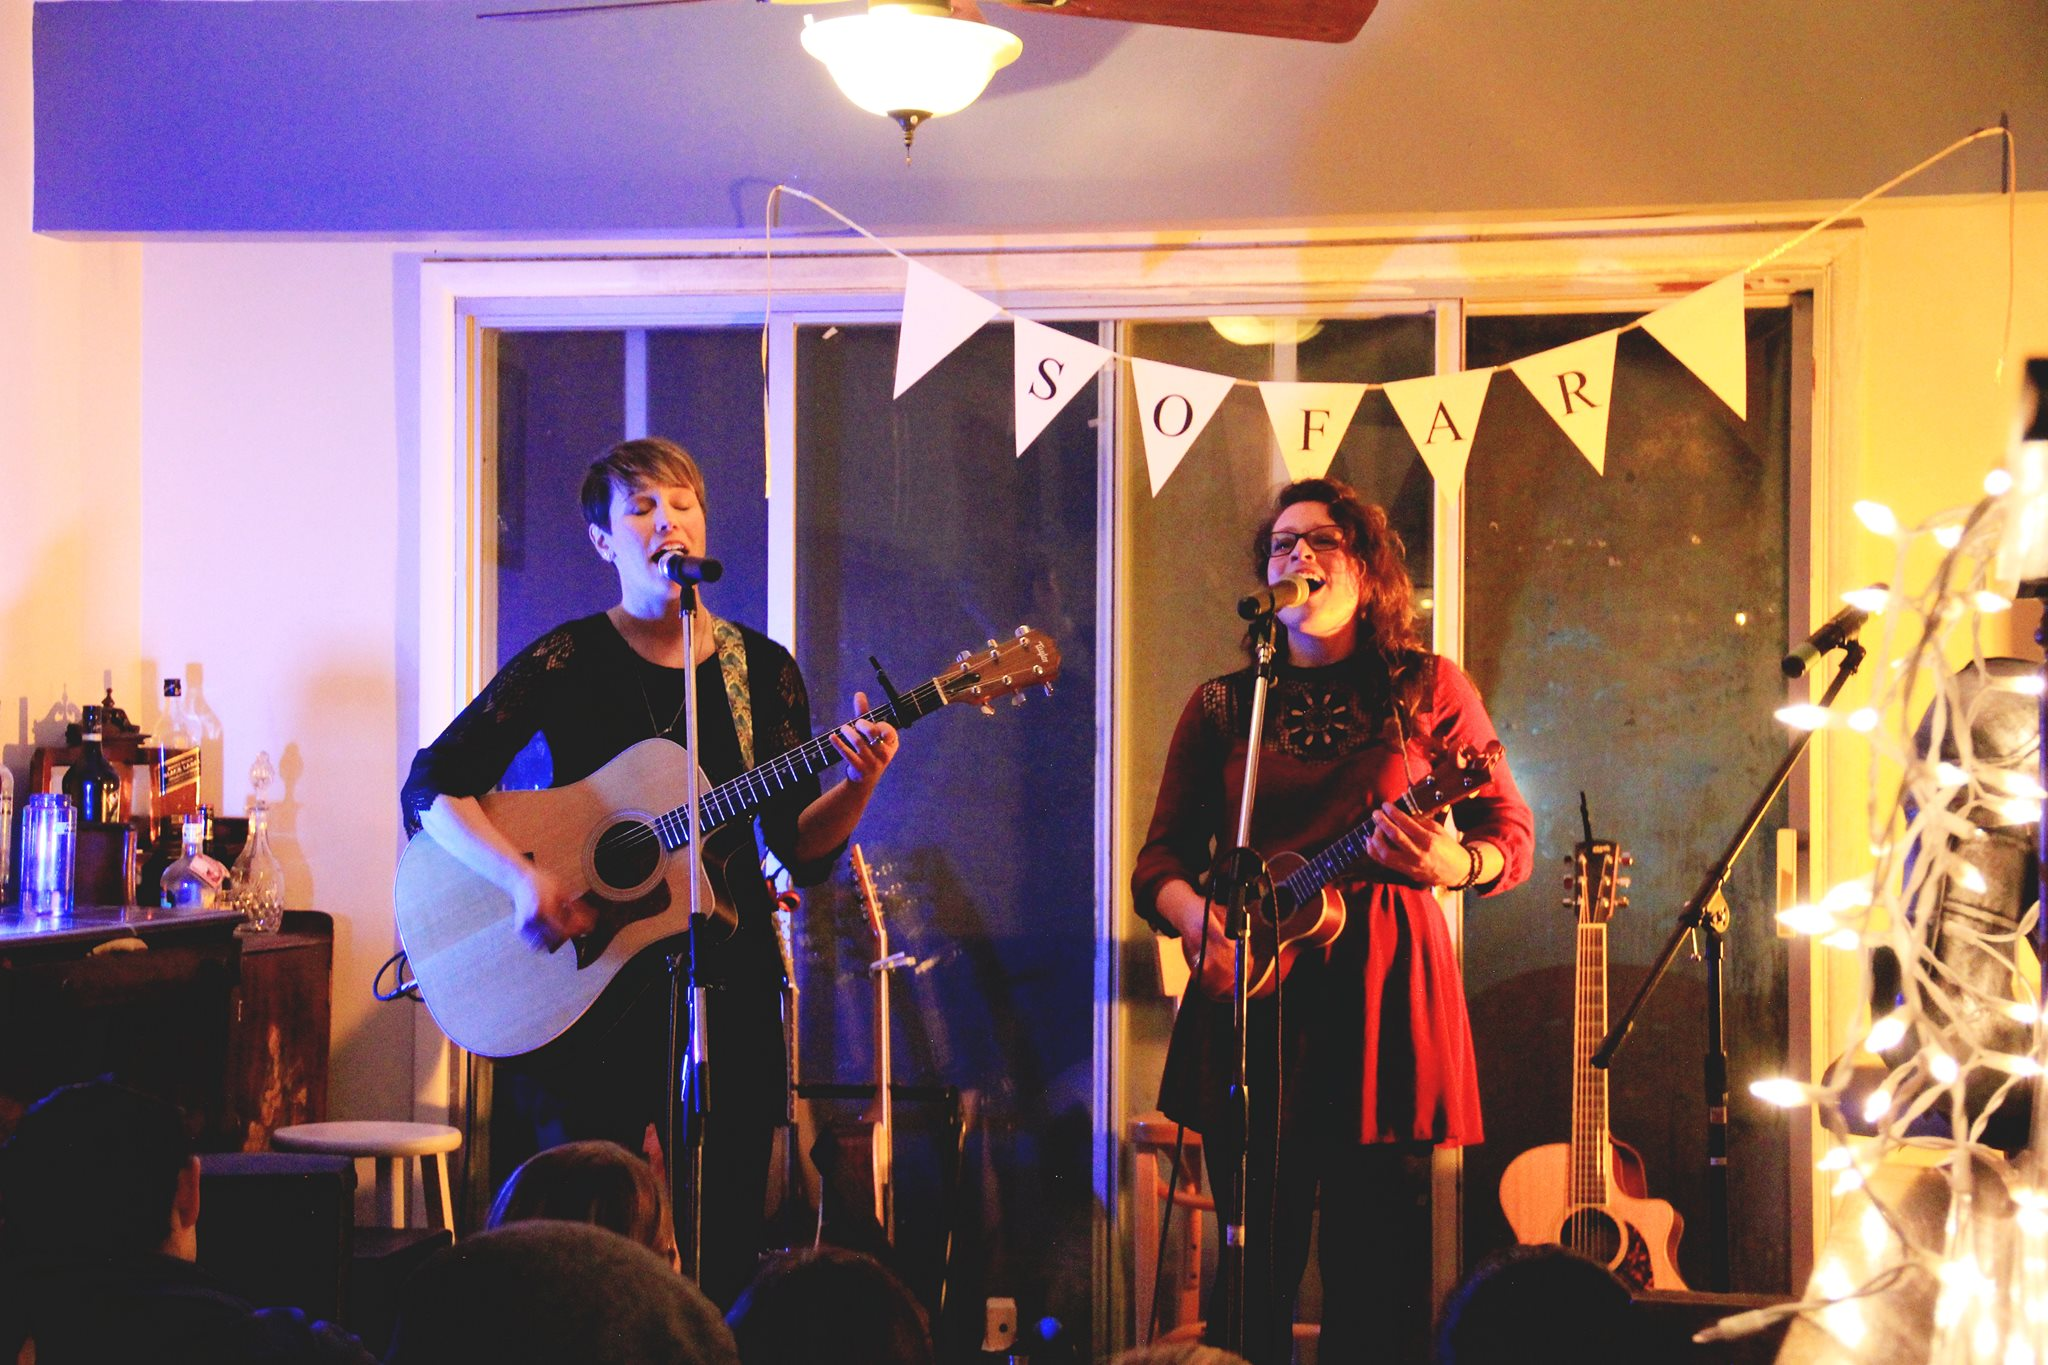 Sofar Sounds February 2016